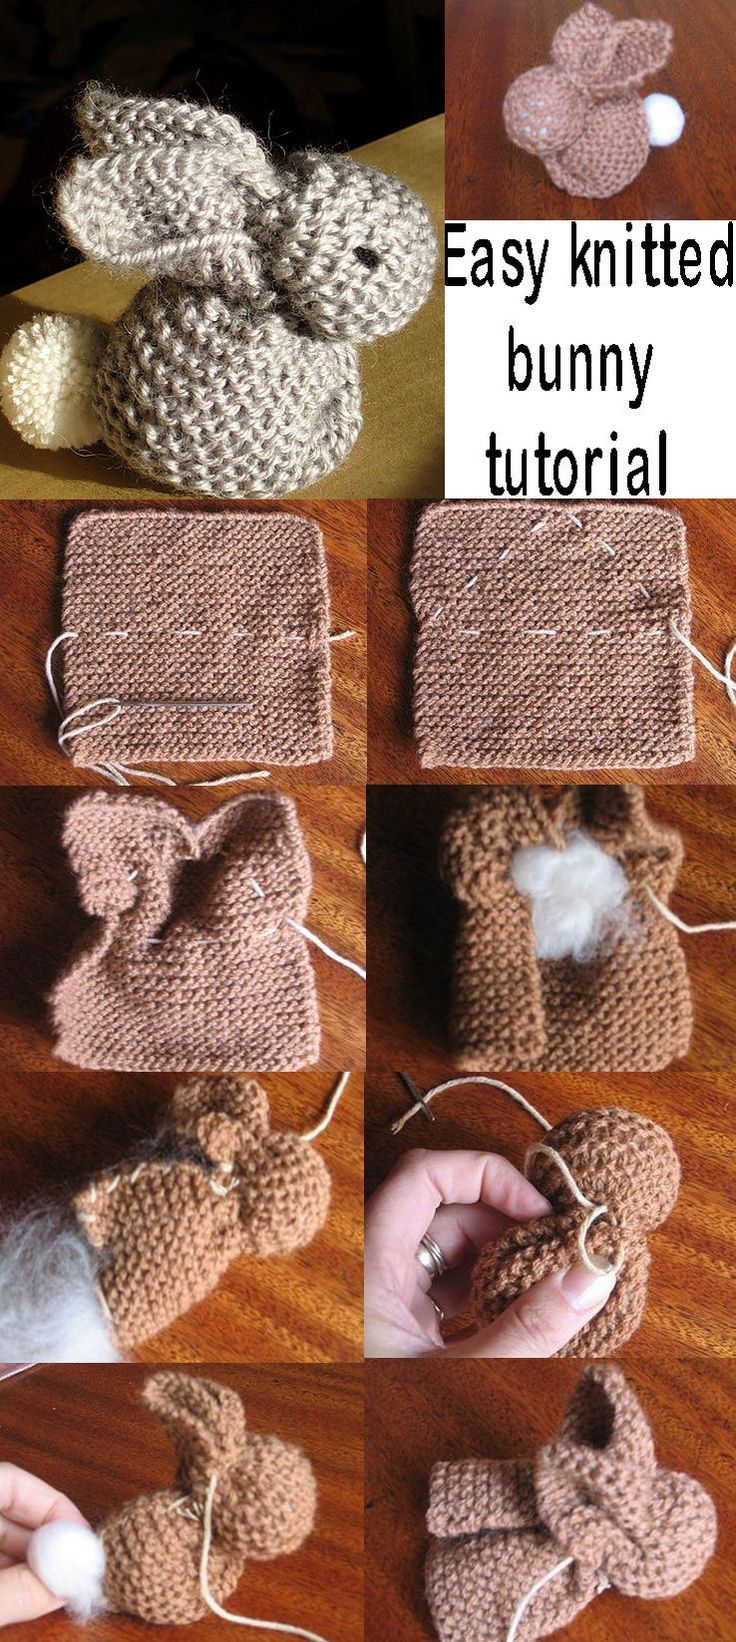 Easy knitted bunny tutorial. Aahw... Schattig!